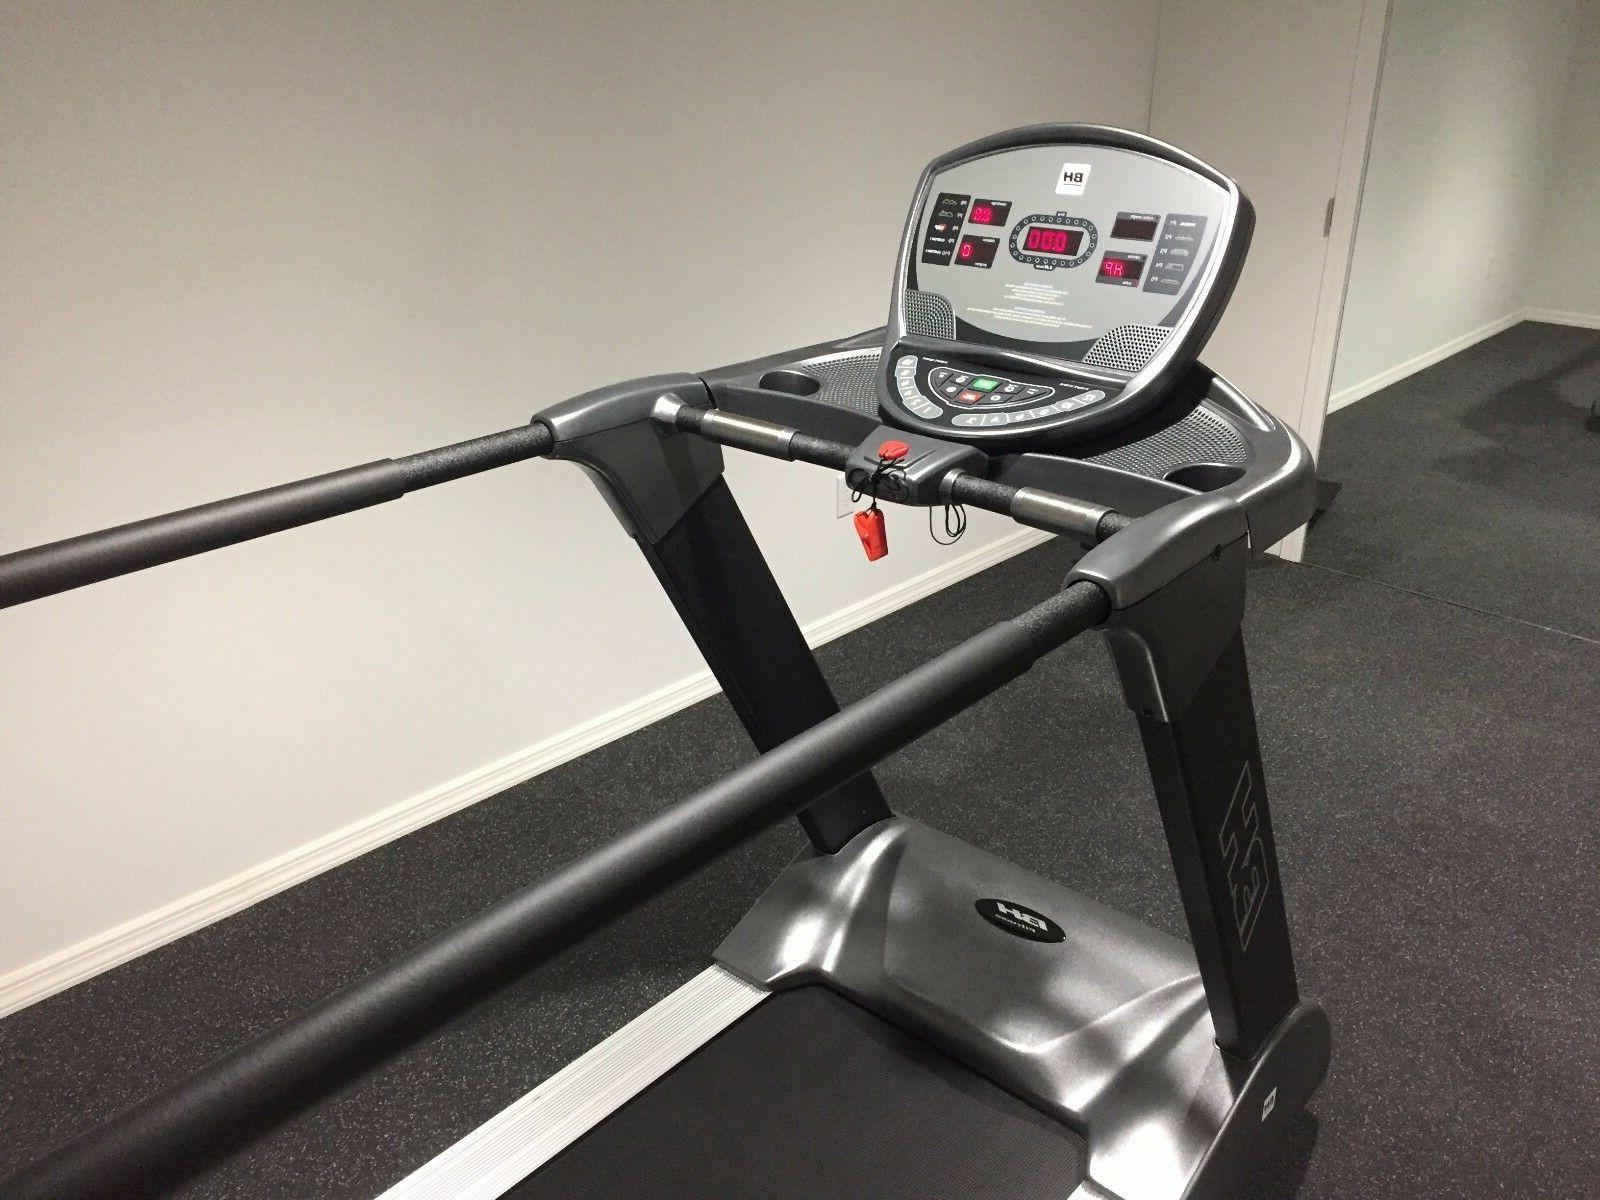 BH Fitness T8 treadmill with medical rails with